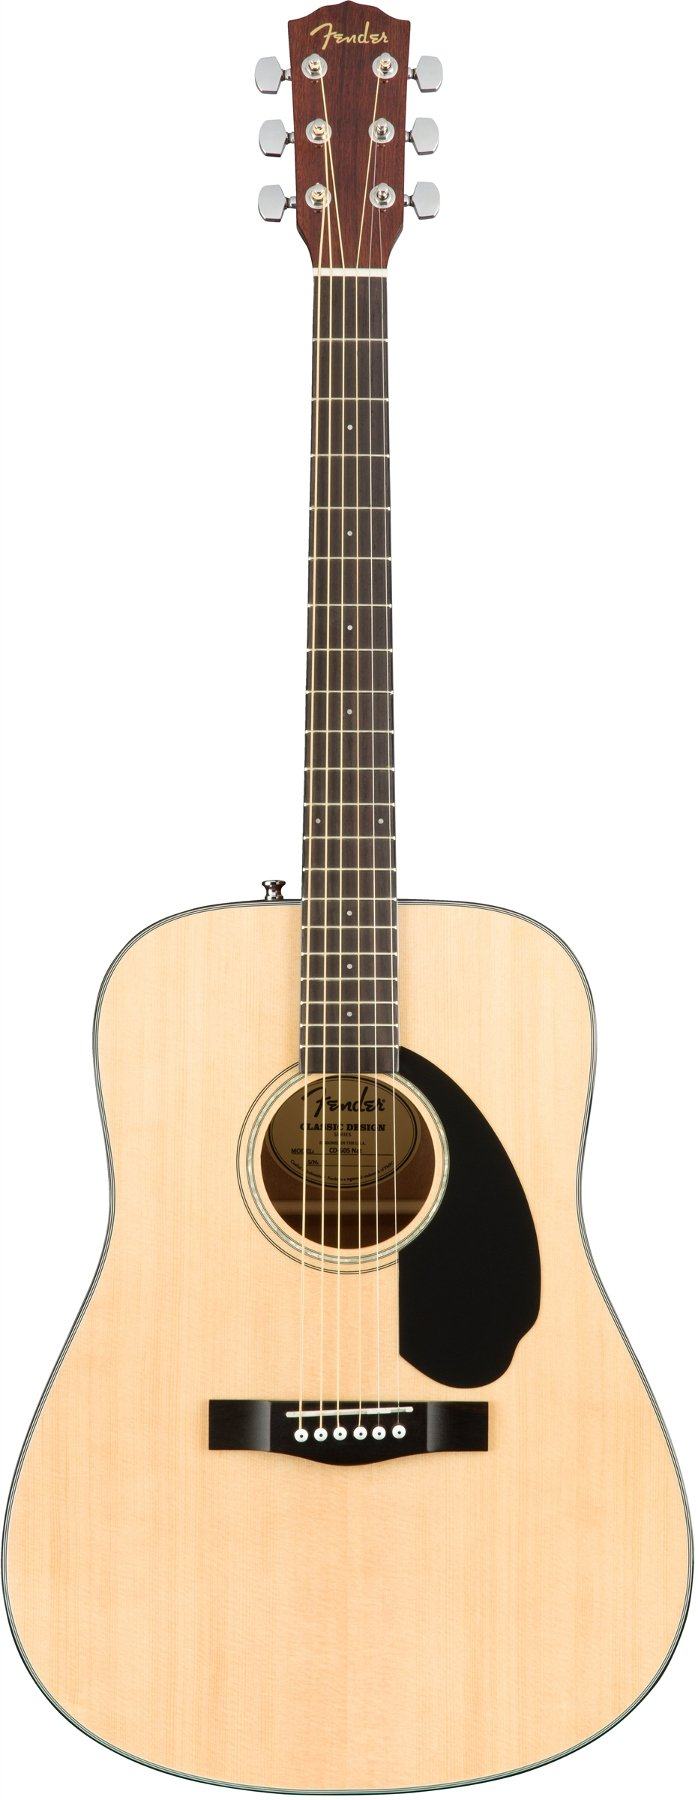 Fender CD-60S Dreadnought Style Acoustic Guitar CD-60S